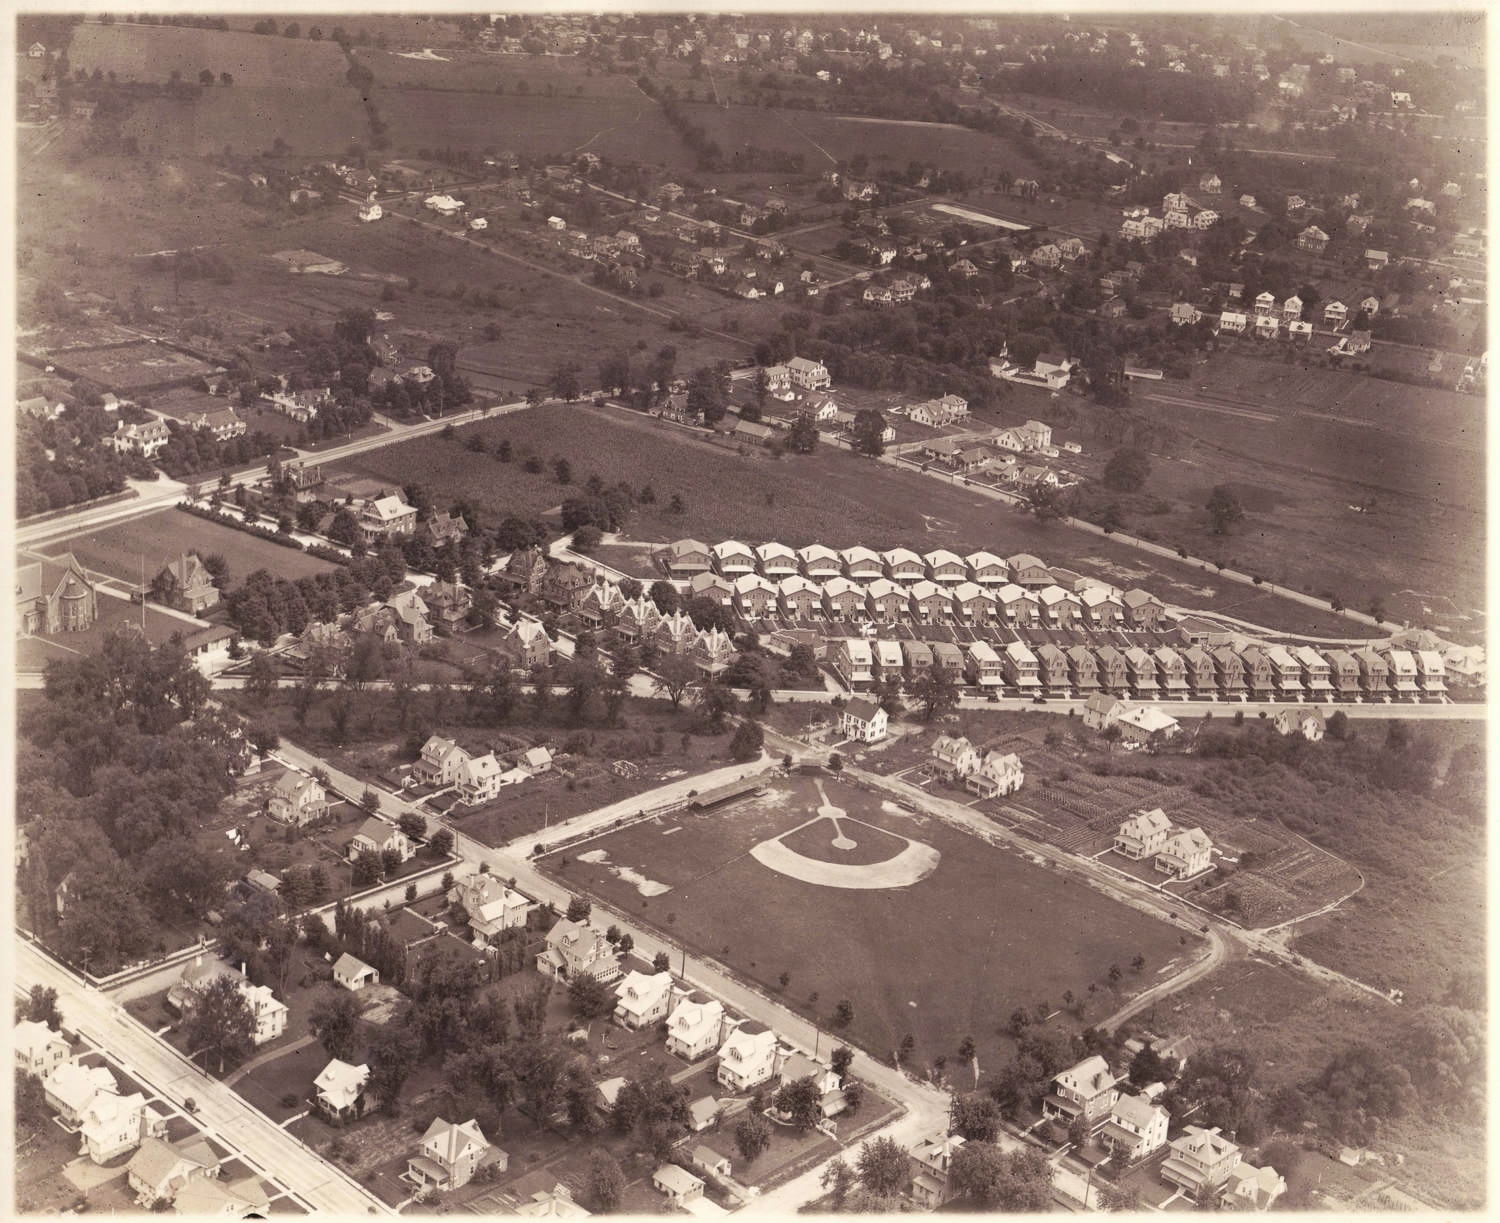 Aerial view of Ambler, 1926.   Dallin Aerial Survey Company. Hagley Museum and Library.